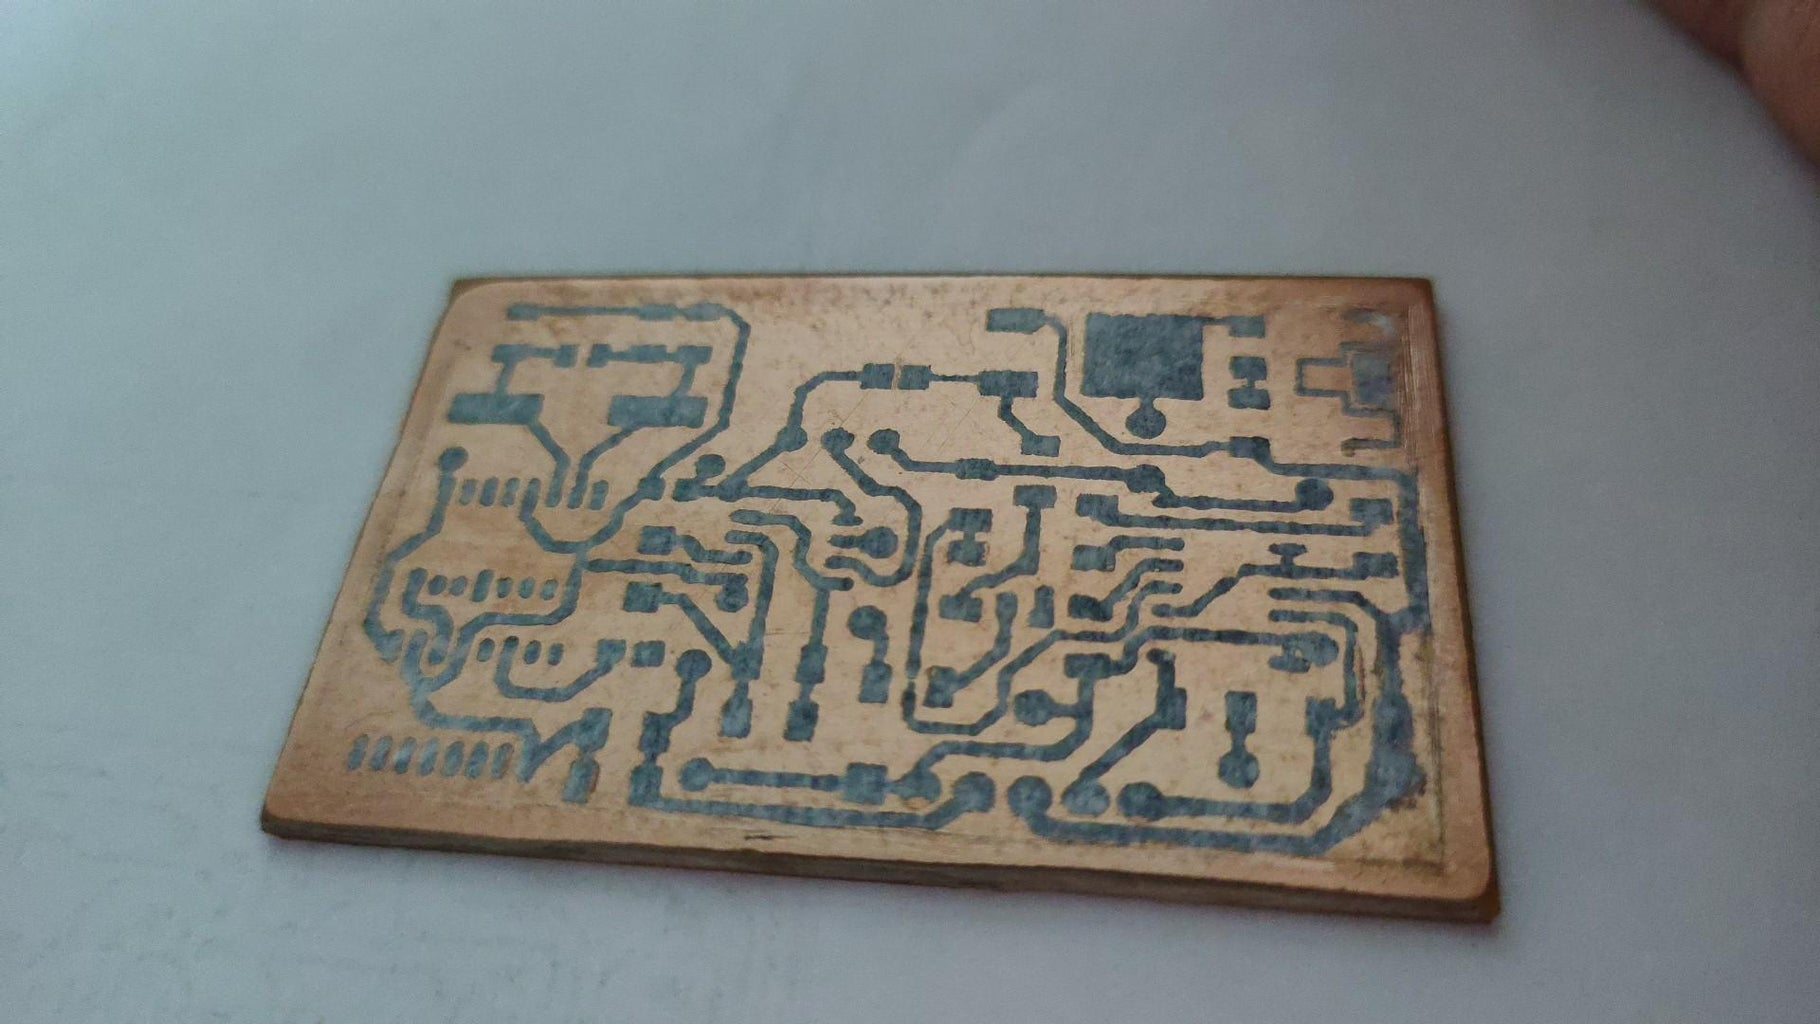 Fabricating the PCB